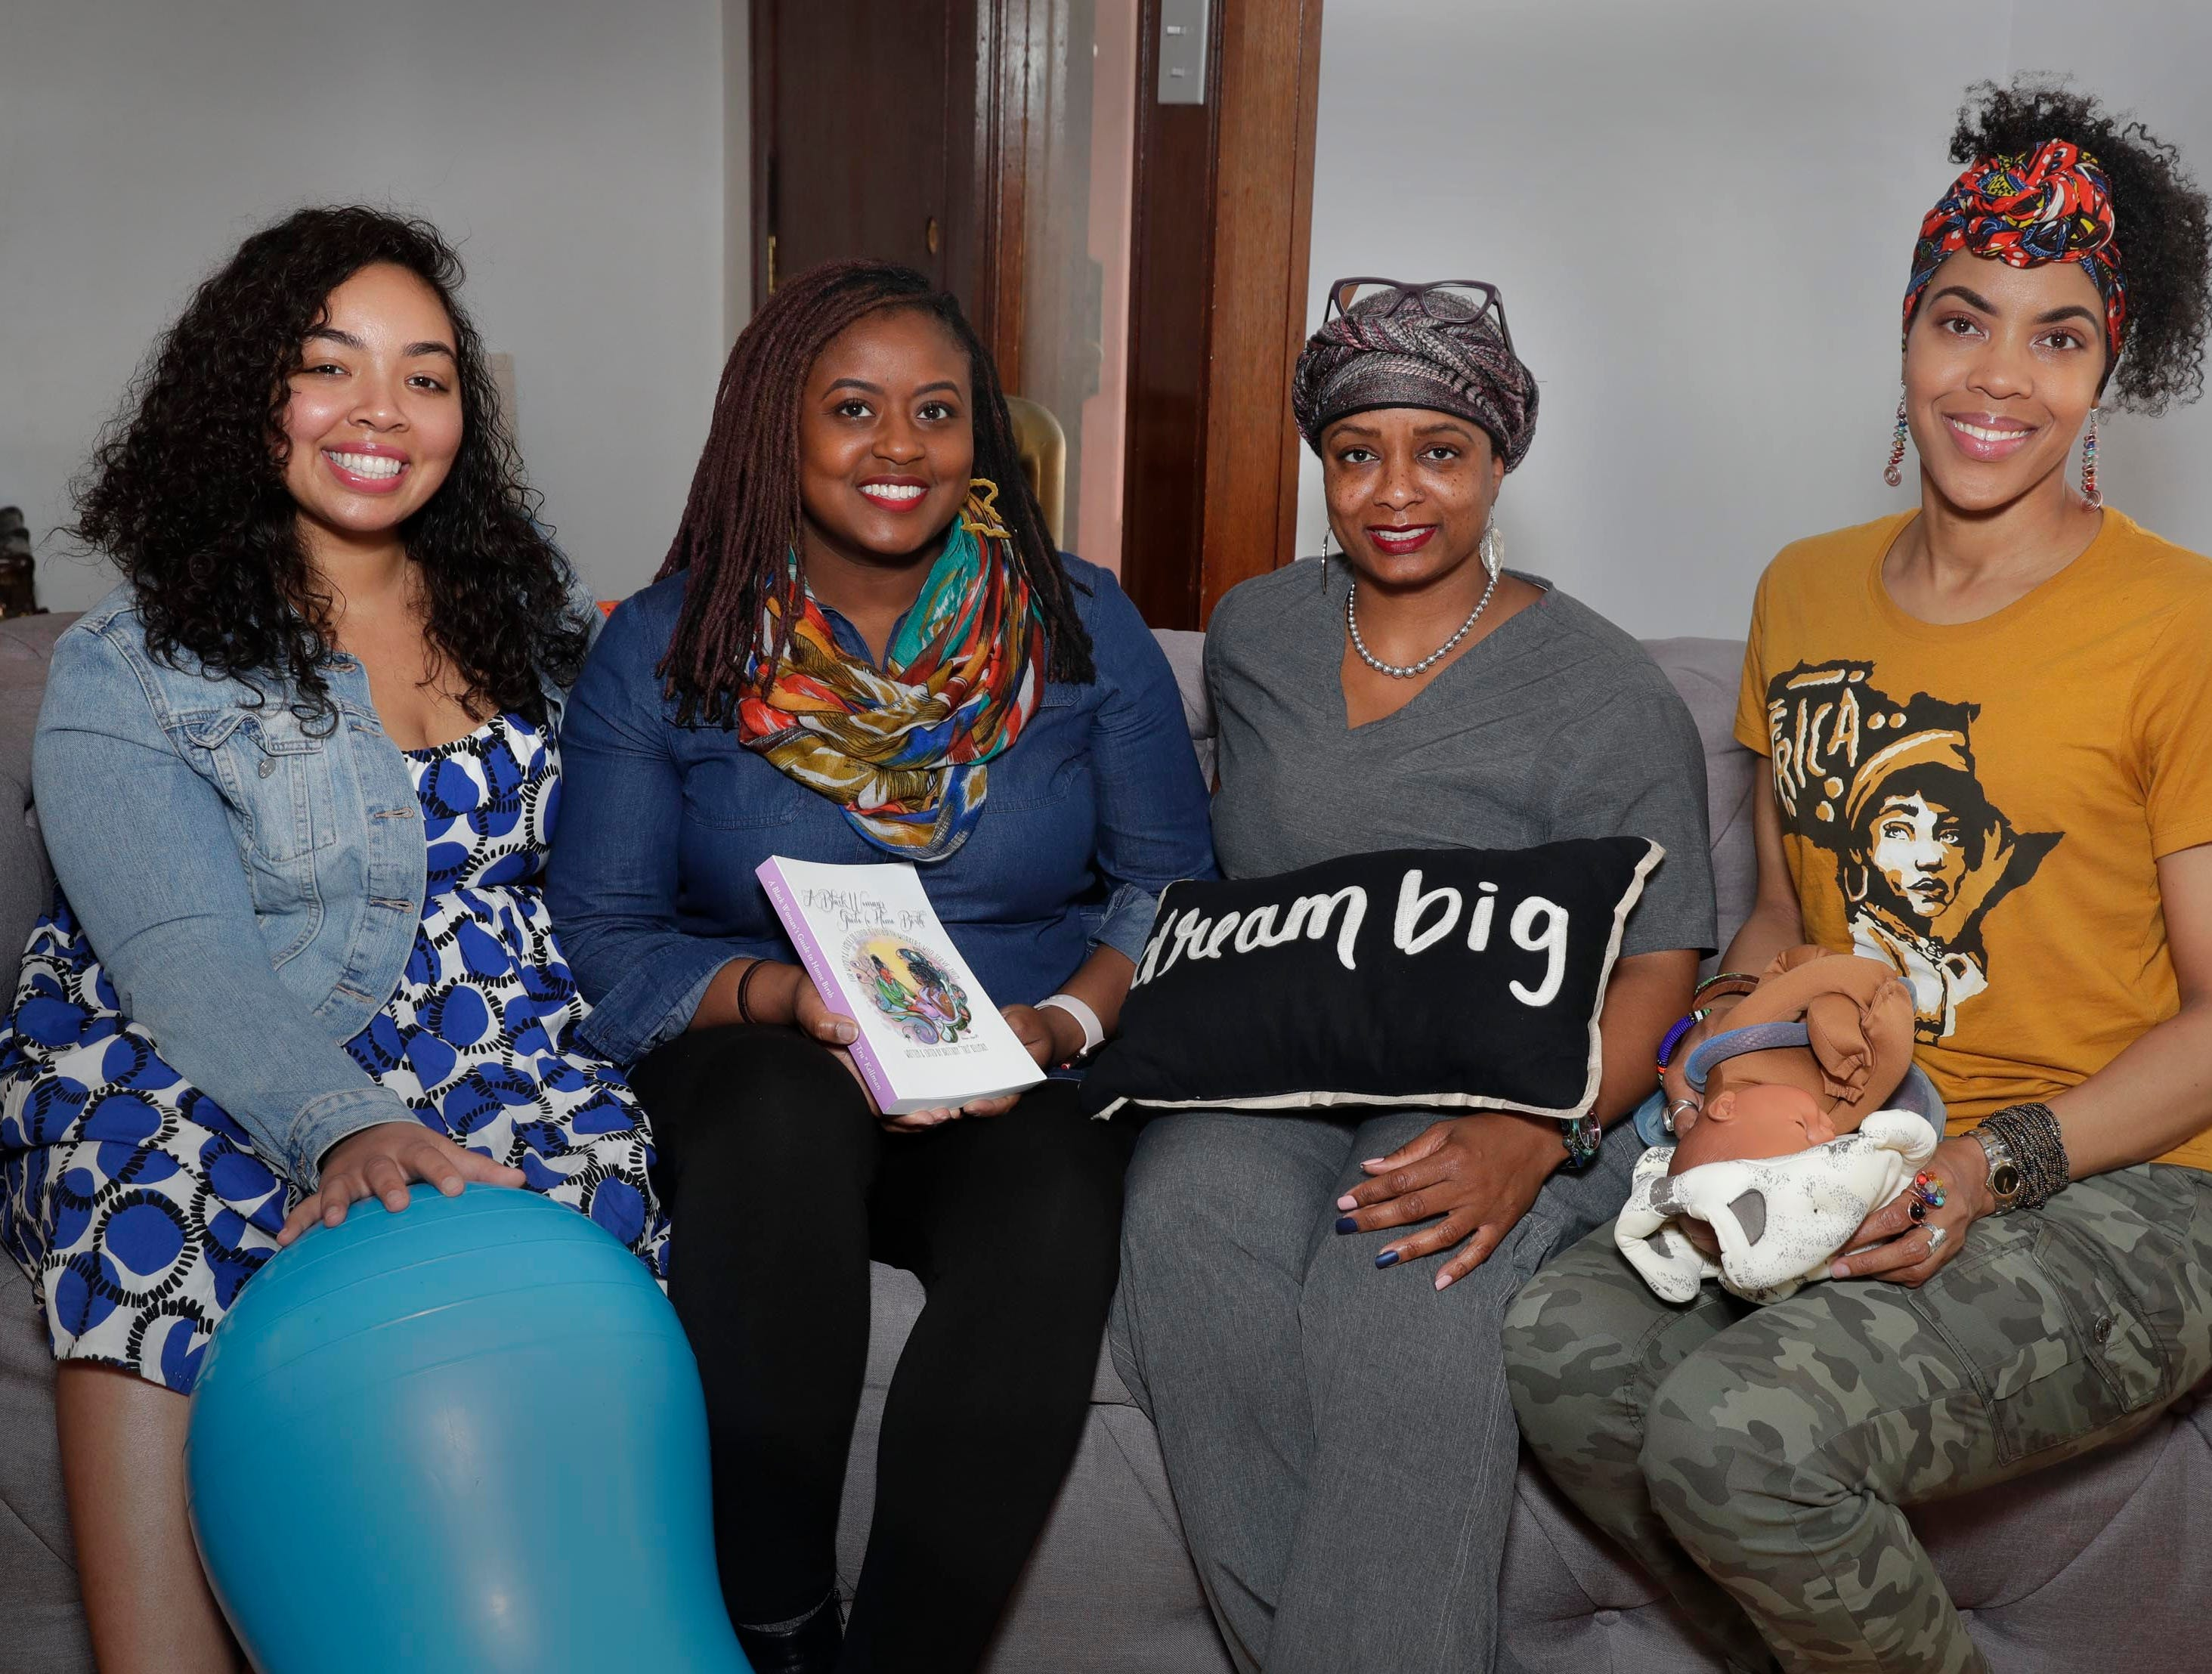 Doulas Shani Toor (left), infant mental health consultant Kisha Shanks, and doulas Tiffany Scaife and Vanessa Johnson meet often as a community to encourage one another and share information.